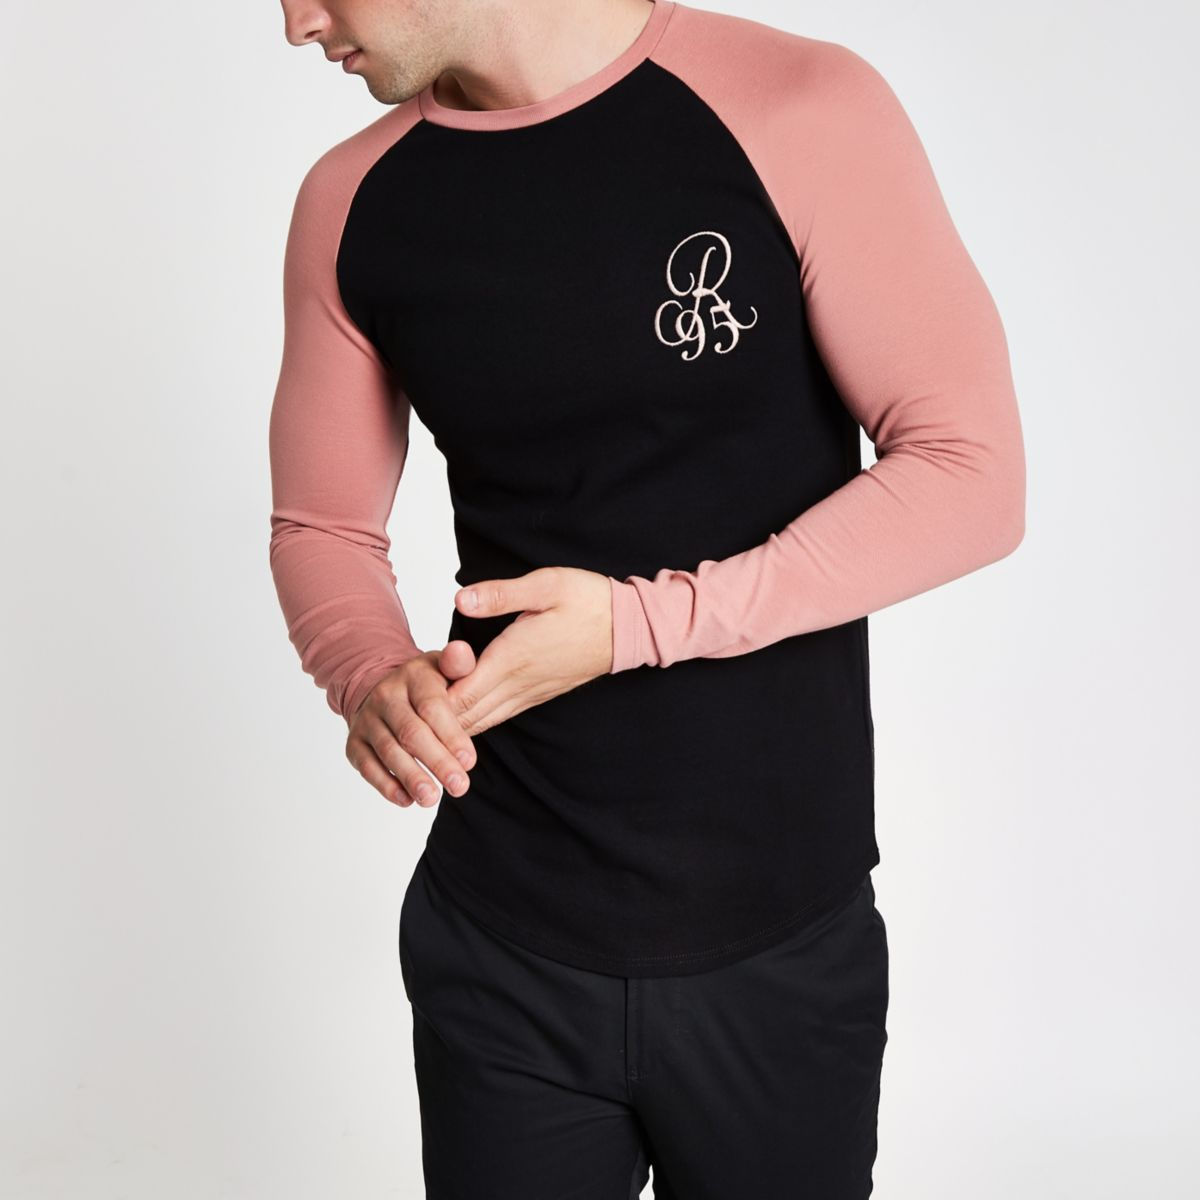 Black pique muscle fit raglan T-shirt